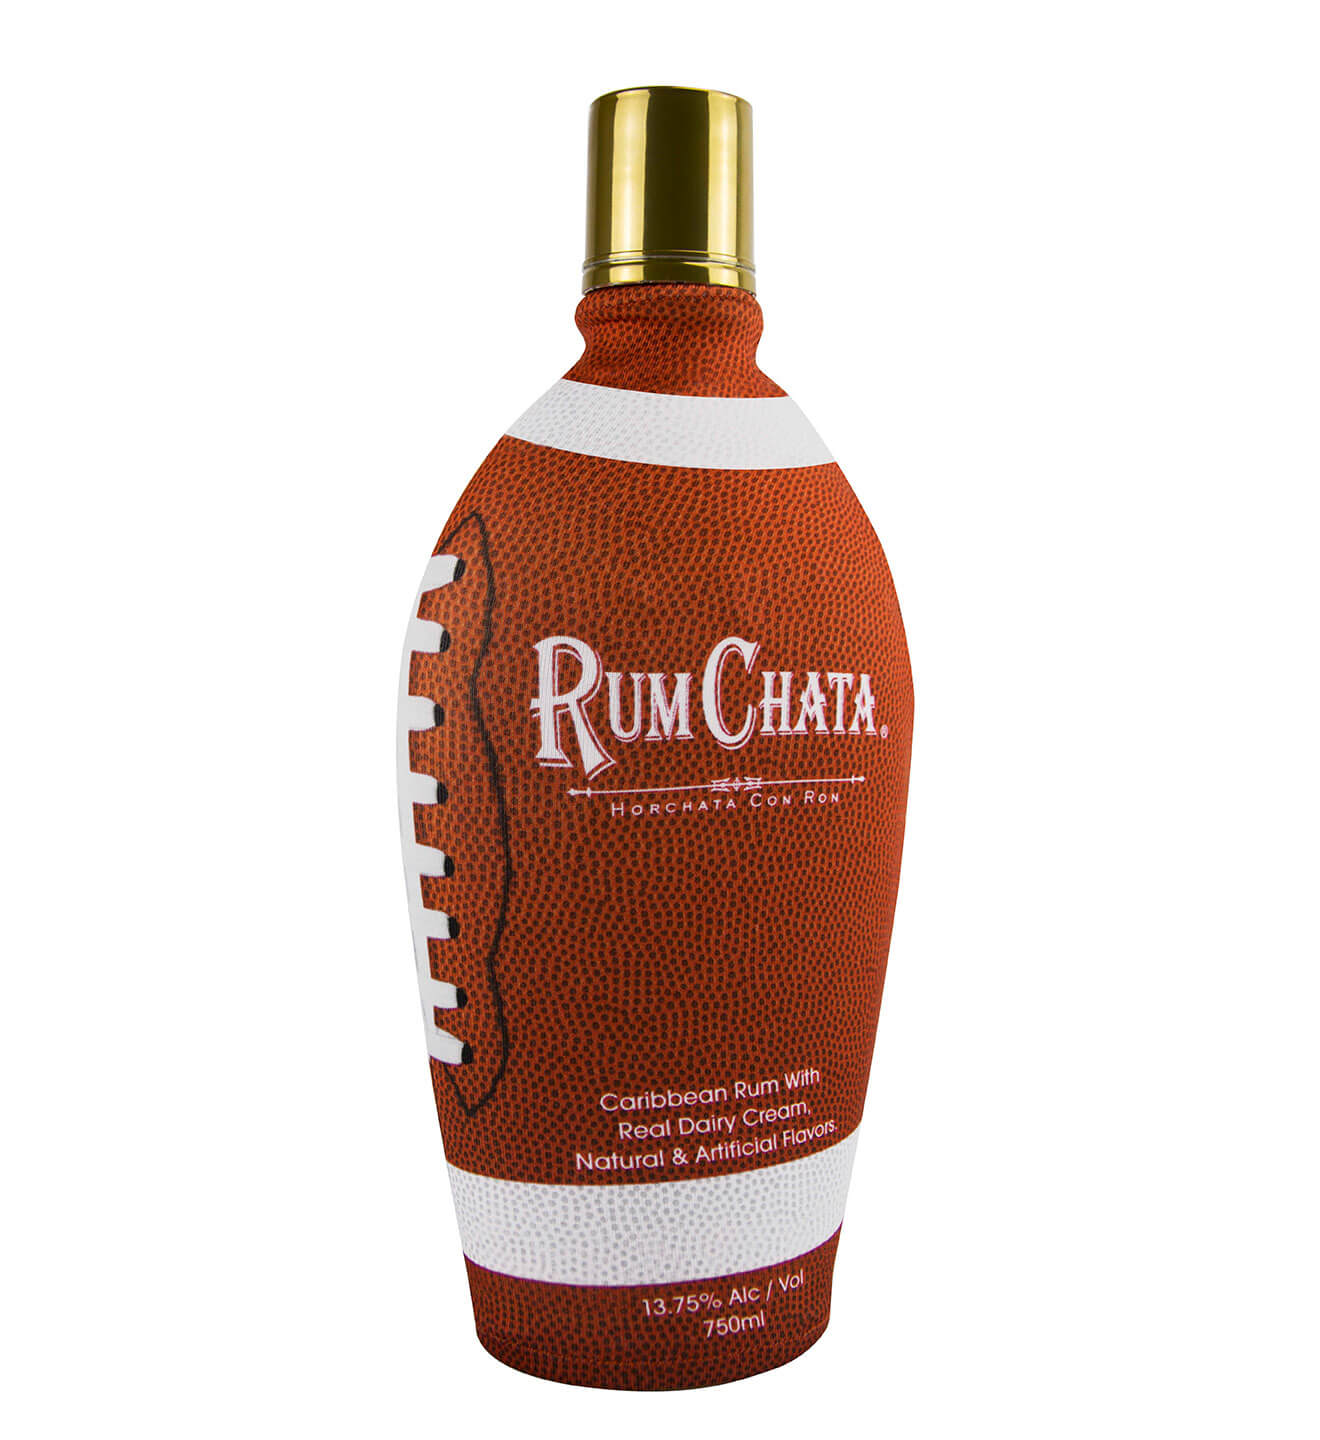 RumChata Football Sleeve, with bottle on white